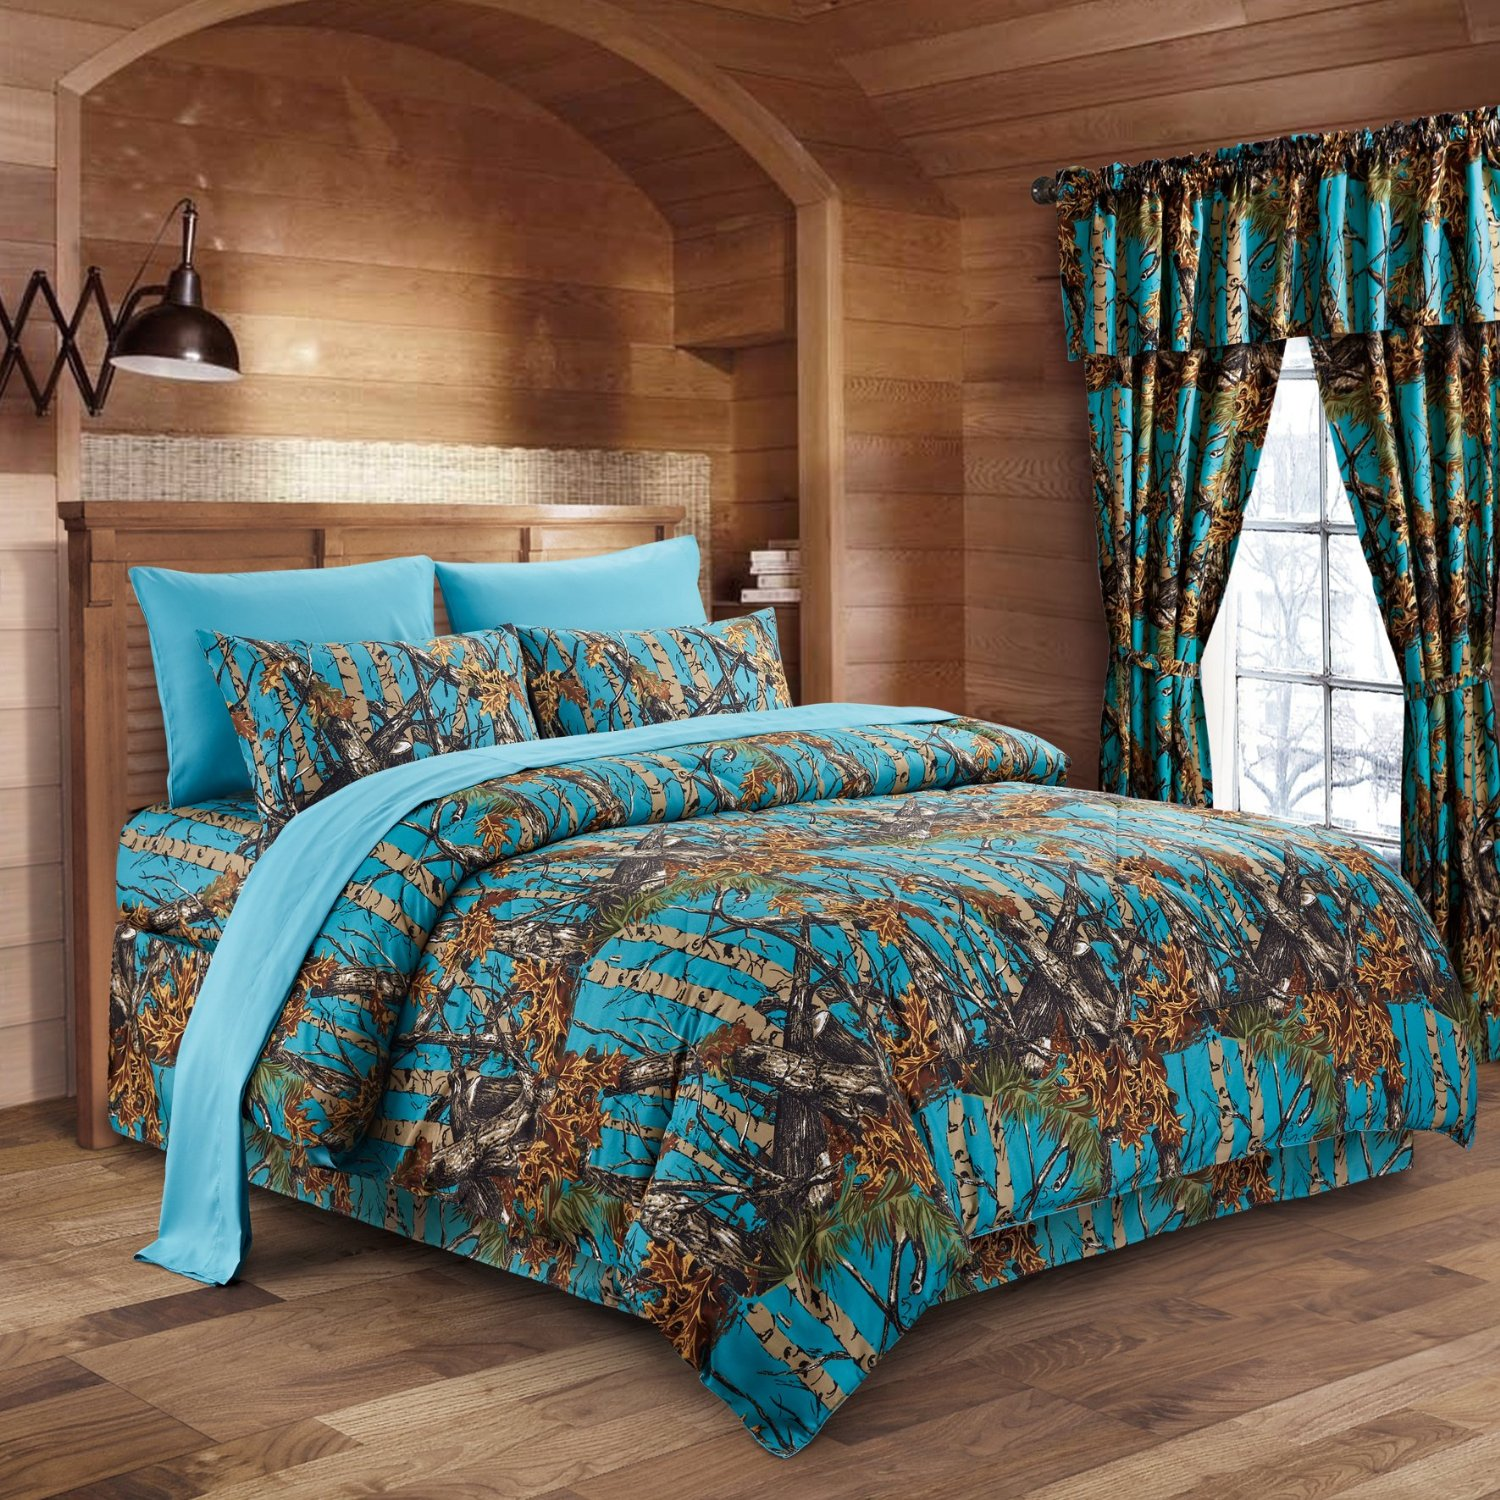 Regal Comfort 5pc Twin Size Woods Sea Breeze Camouflage Premium Comforter, Sheet, Pillowcases, and Bed Skirt Set Camo Bedding Set For Hunters Cabin or Rustic Lodge Teens Boys and Girls